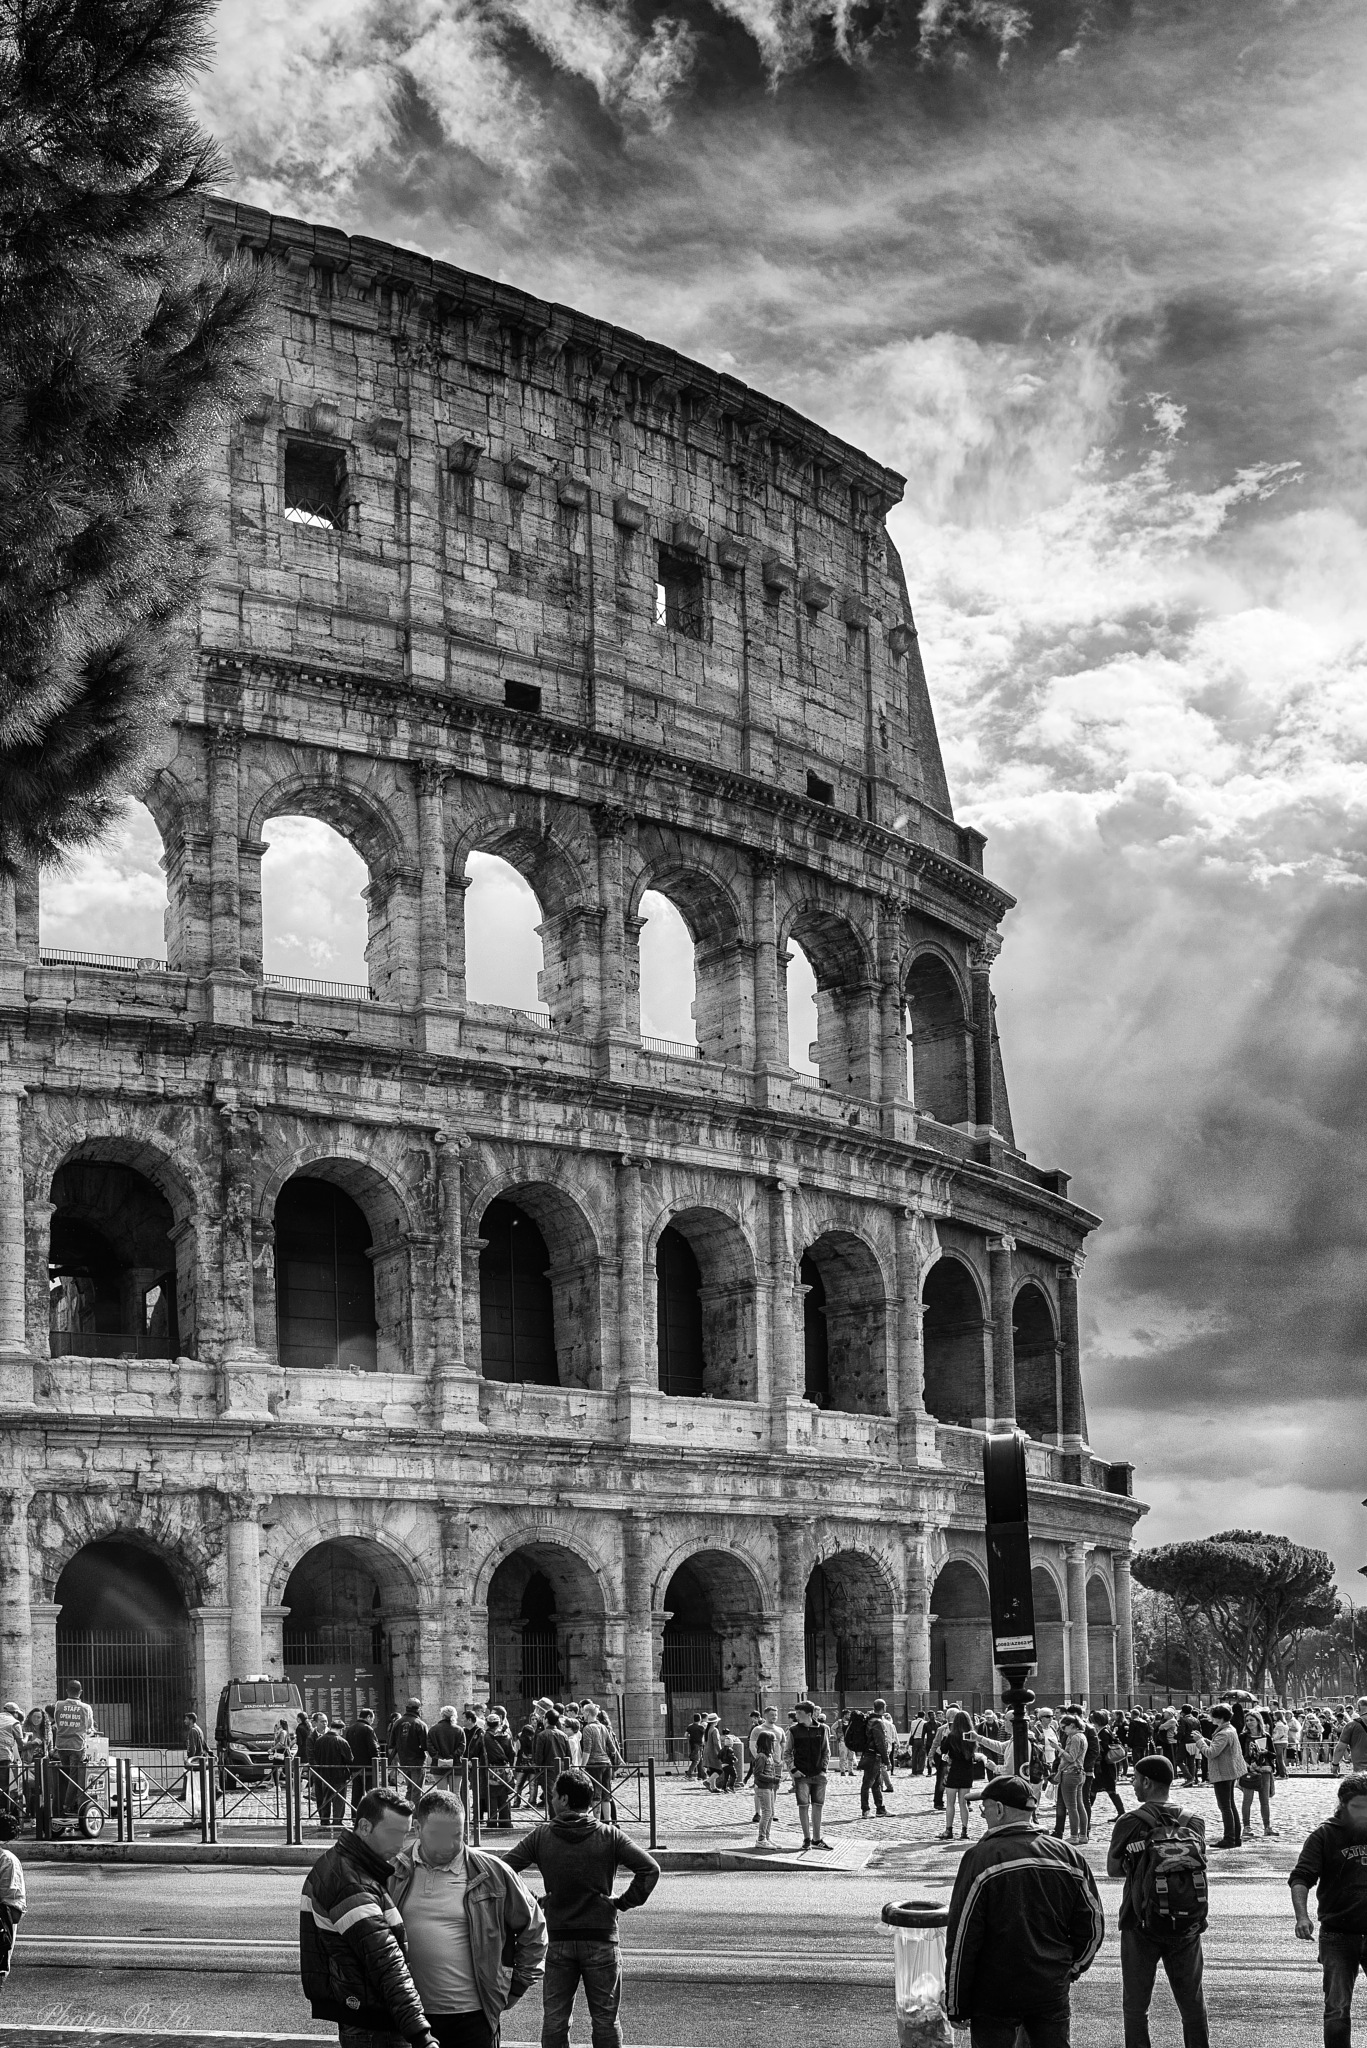 Colosseum by Bernie Lamberz photography